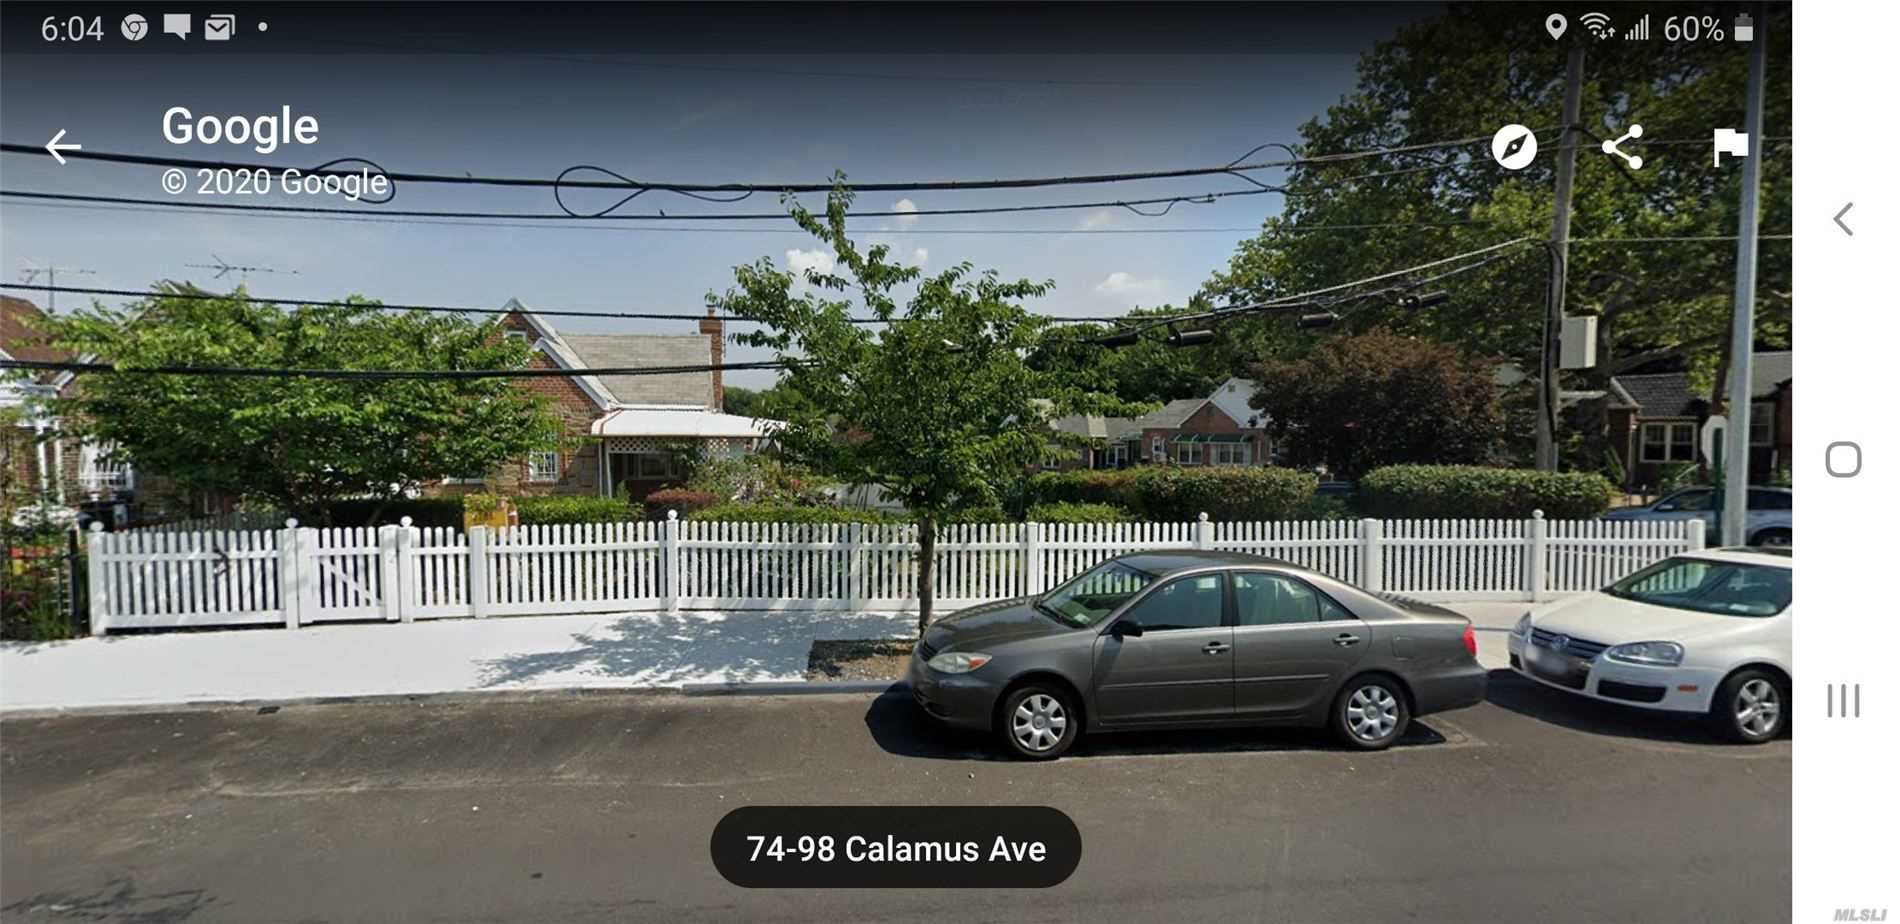 Property for sale at 72-91 Calamus Ave, Elmhurst NY 11373, Elmhurst,  New York 11373